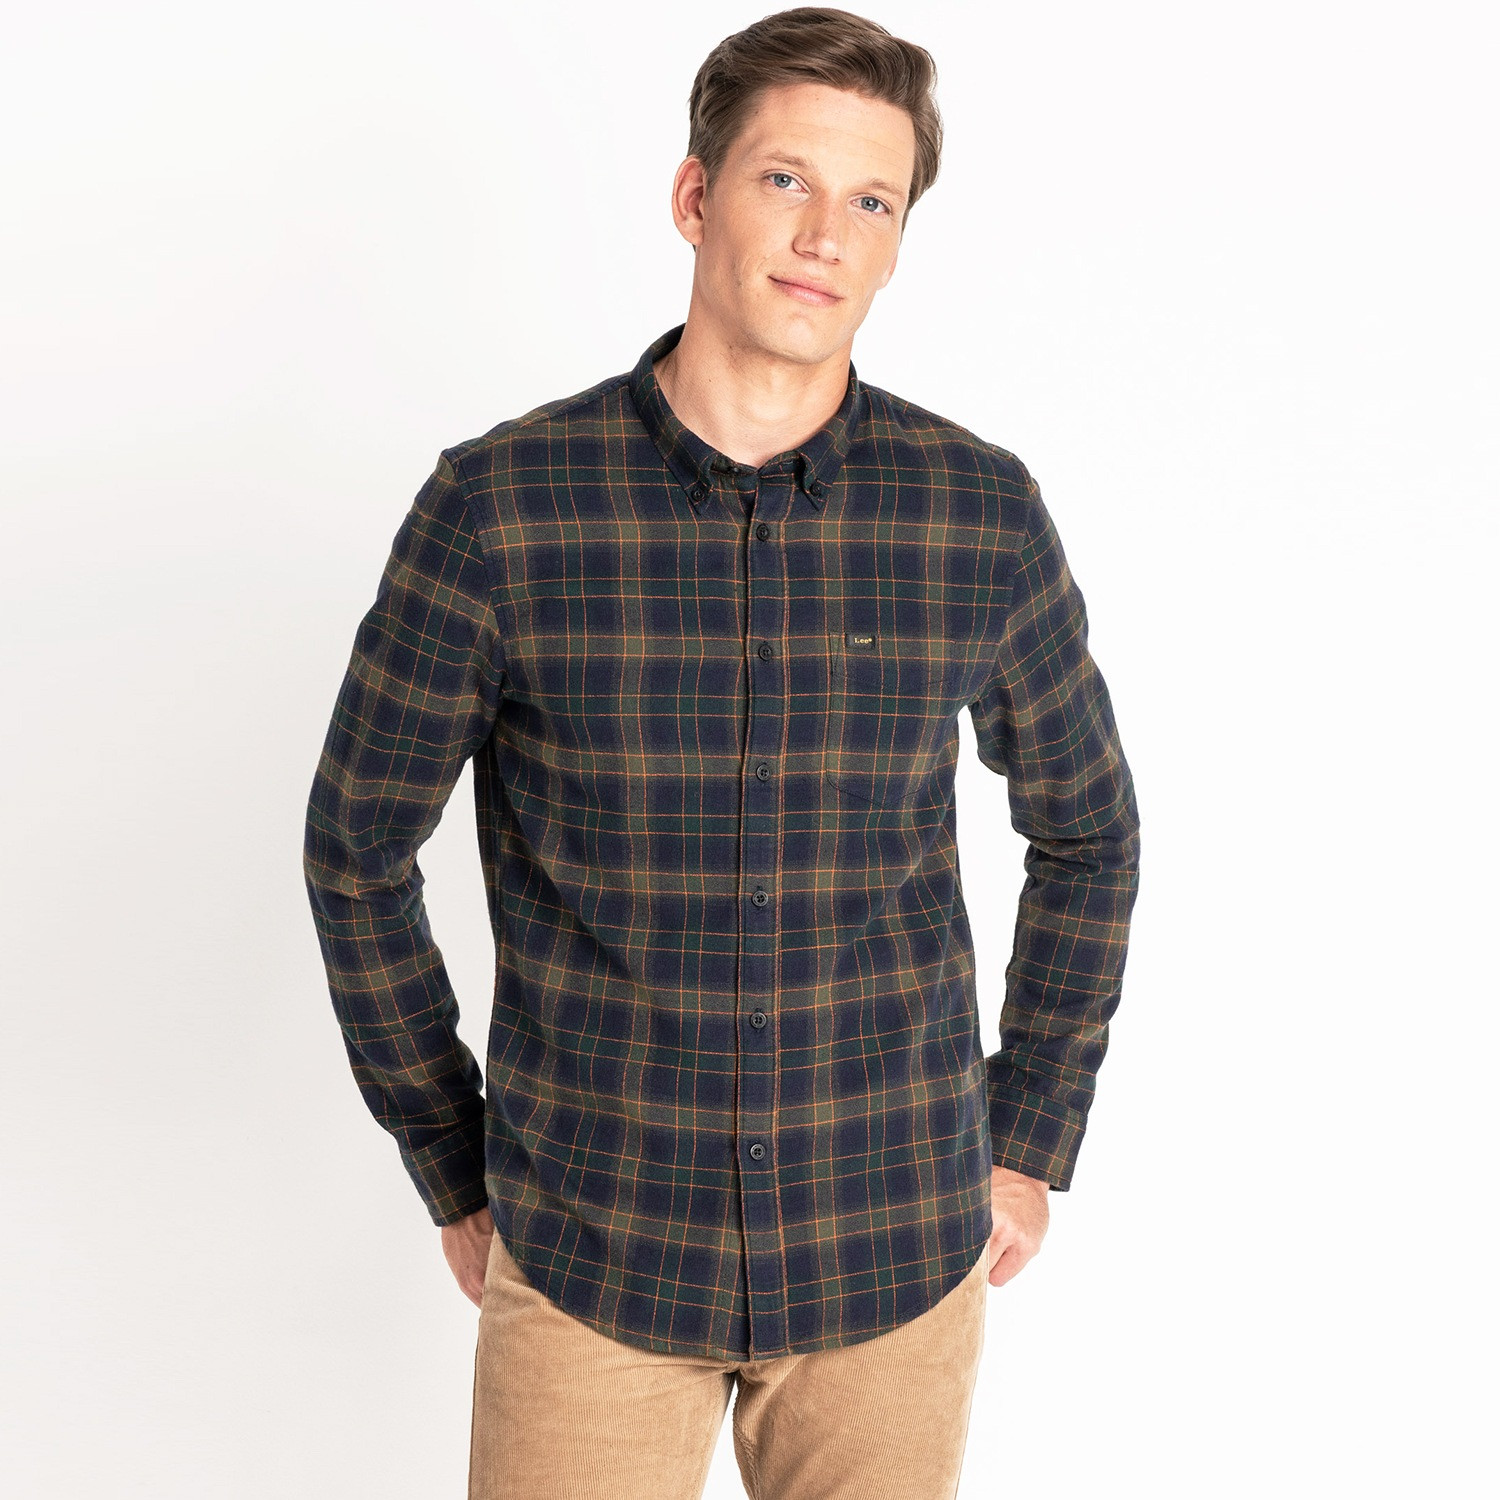 Lee LEE BUTTON DOWN DK BOTTLE GREEN (9000037254_22809)